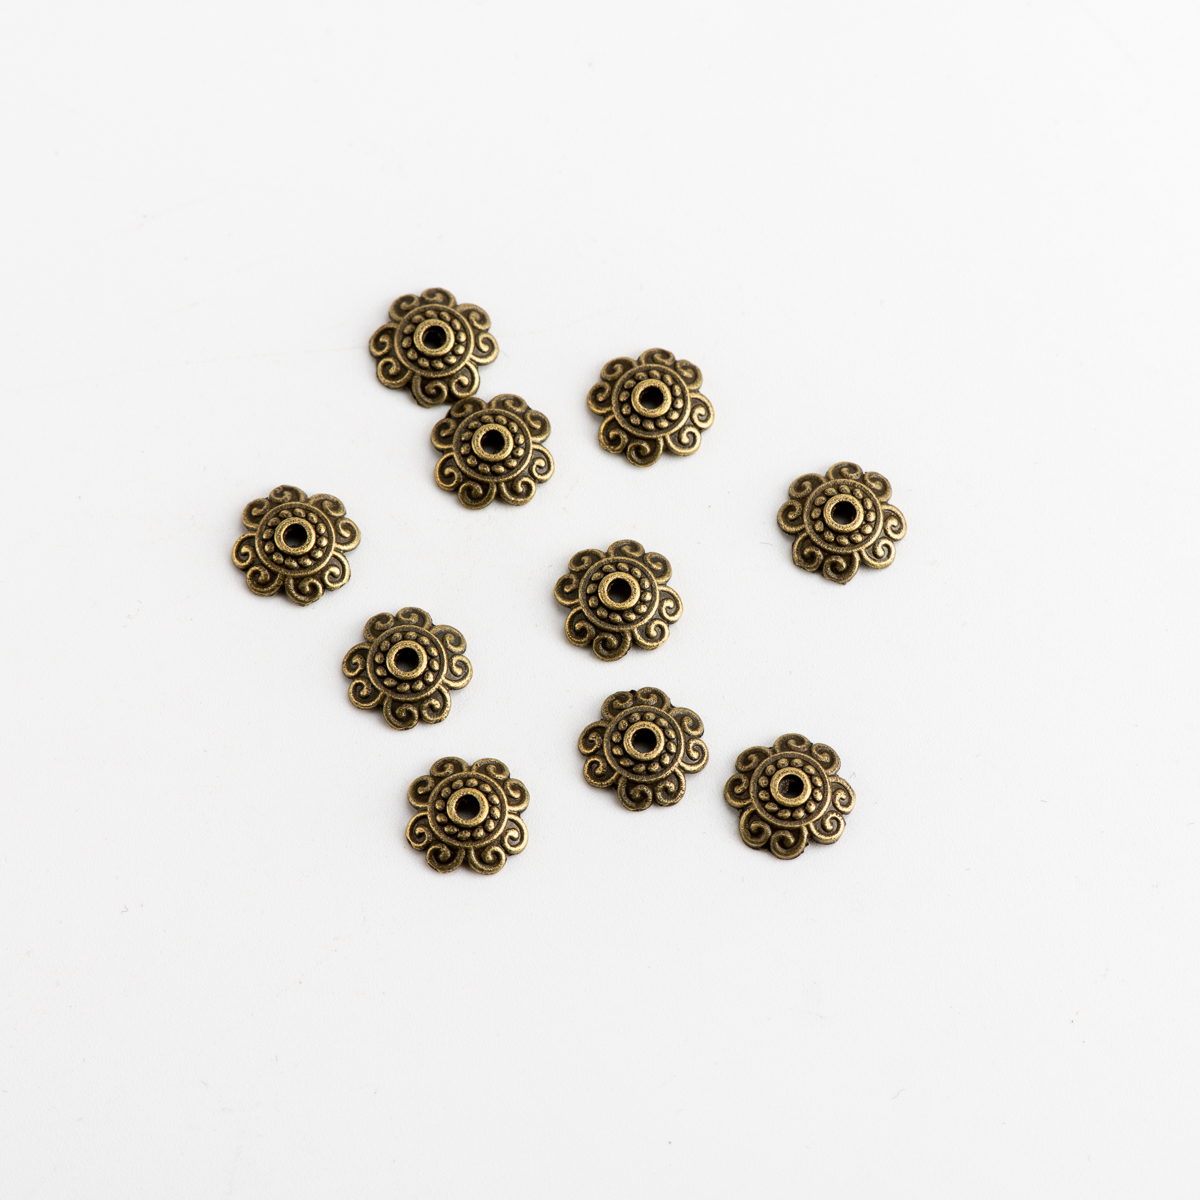 Beads Caps Jewelry Supplies DIY Jewelry Making Findings Handicraft Accessories For Jewelries Needlework #JZ207